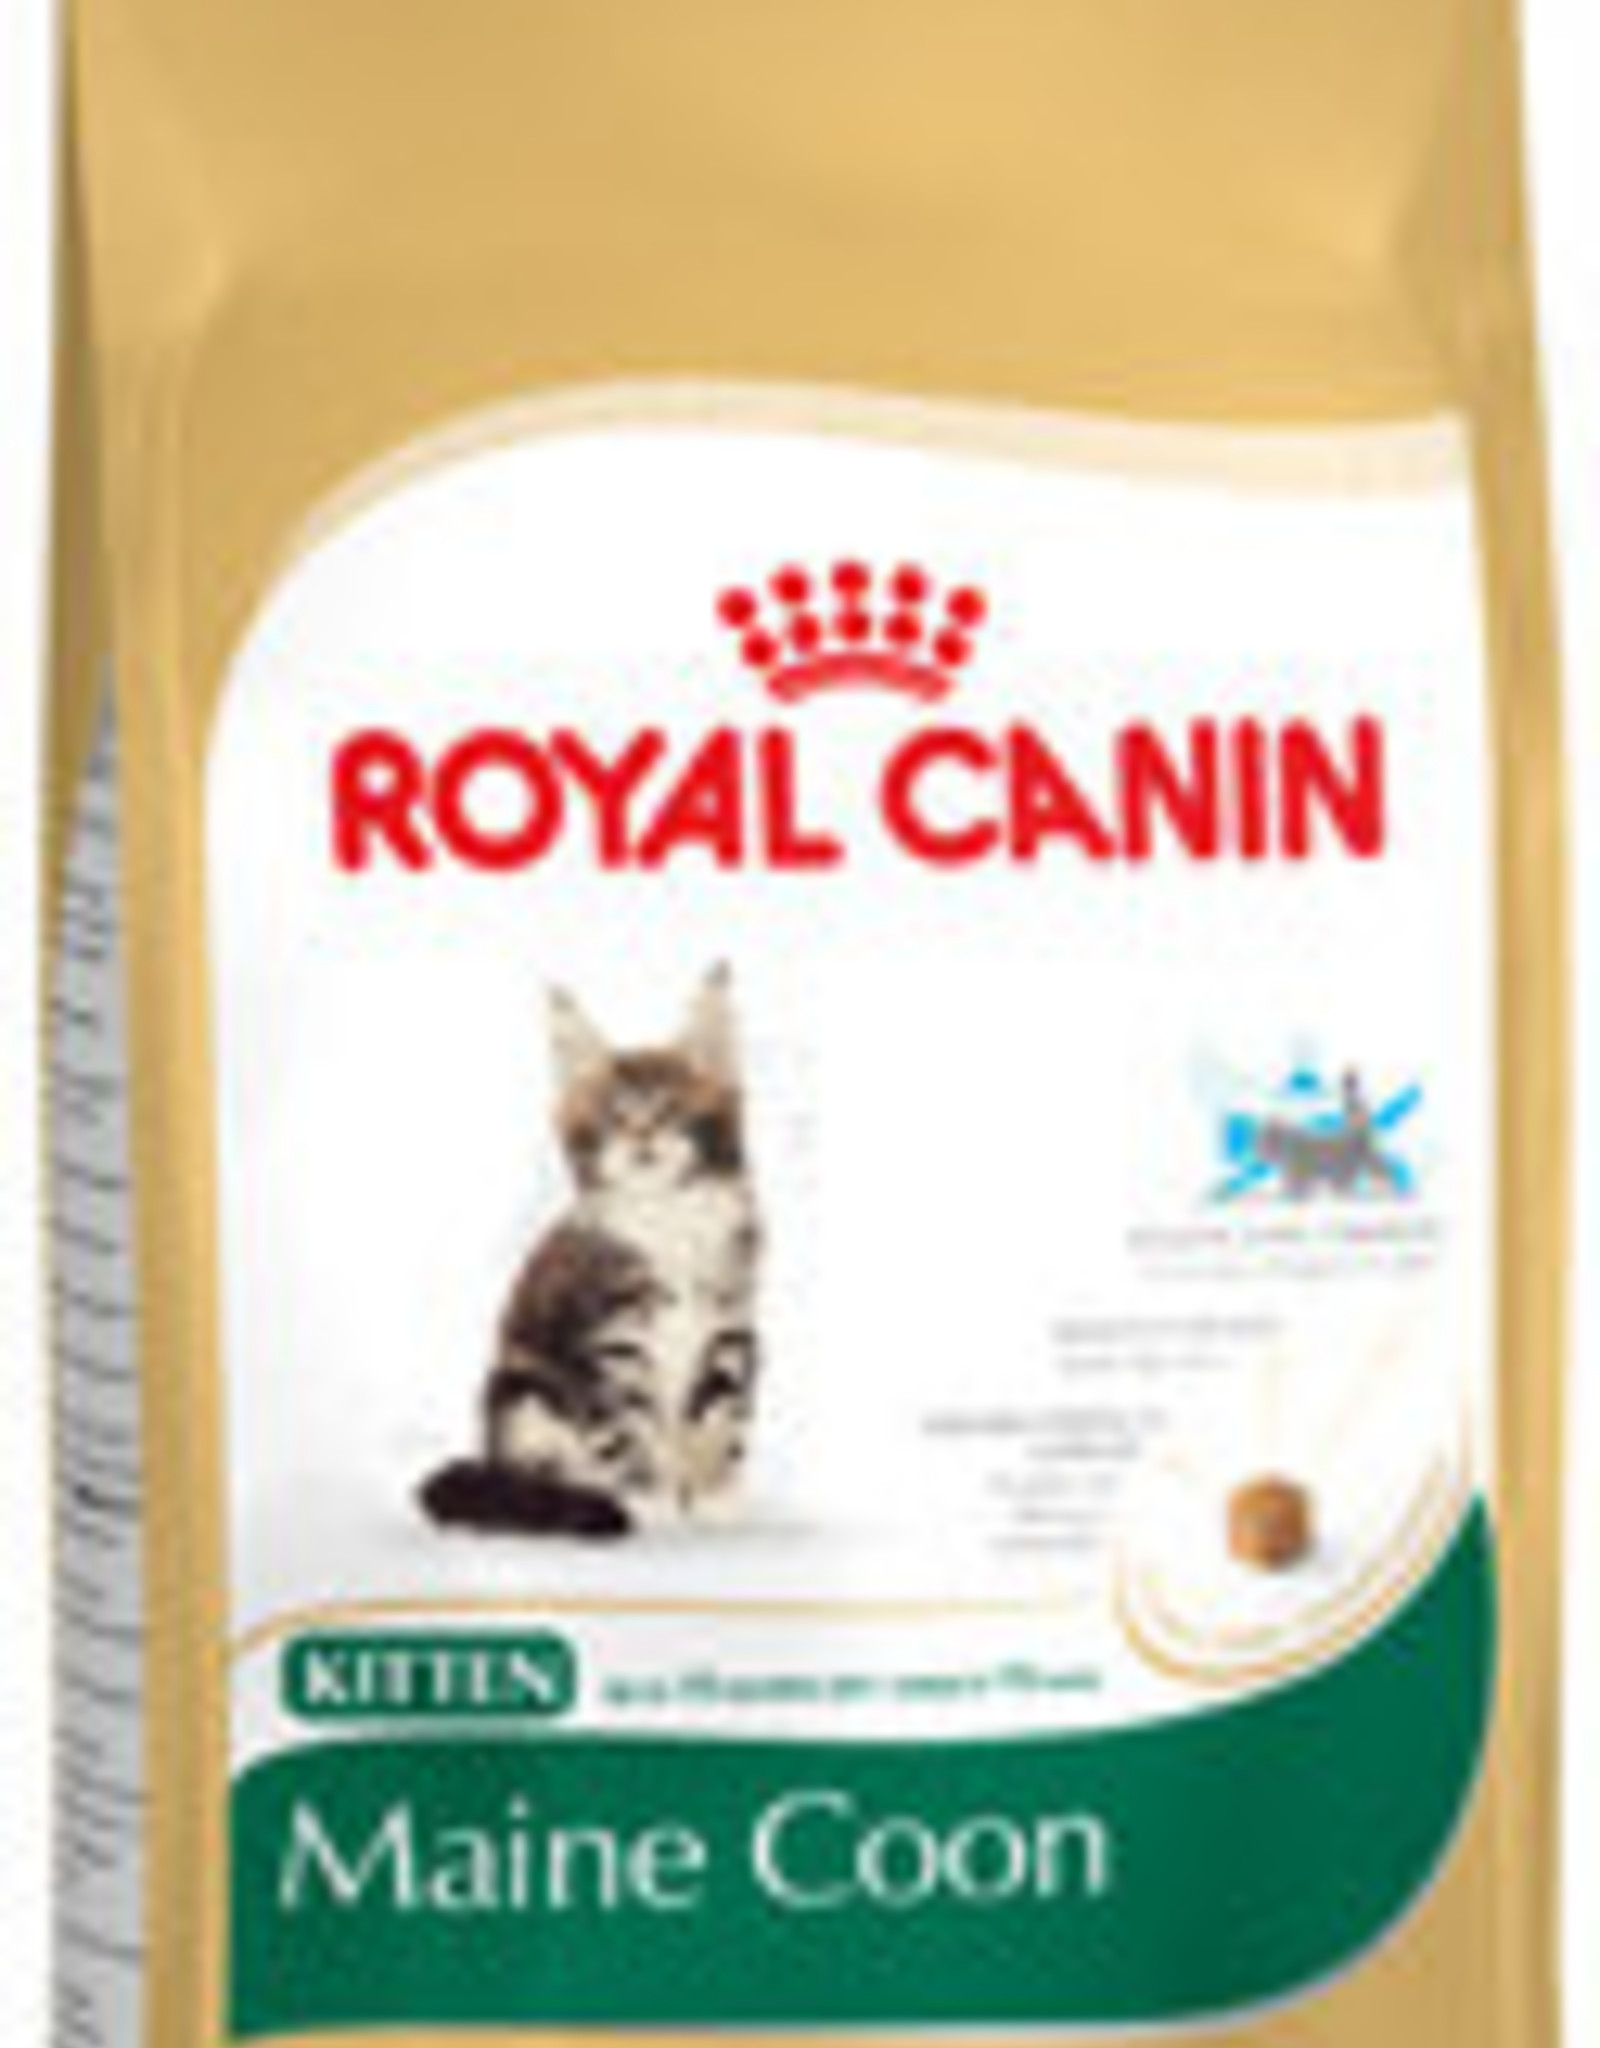 Royal Canin Royal Canin Fbn Kitten Maine Coon 36 4kg